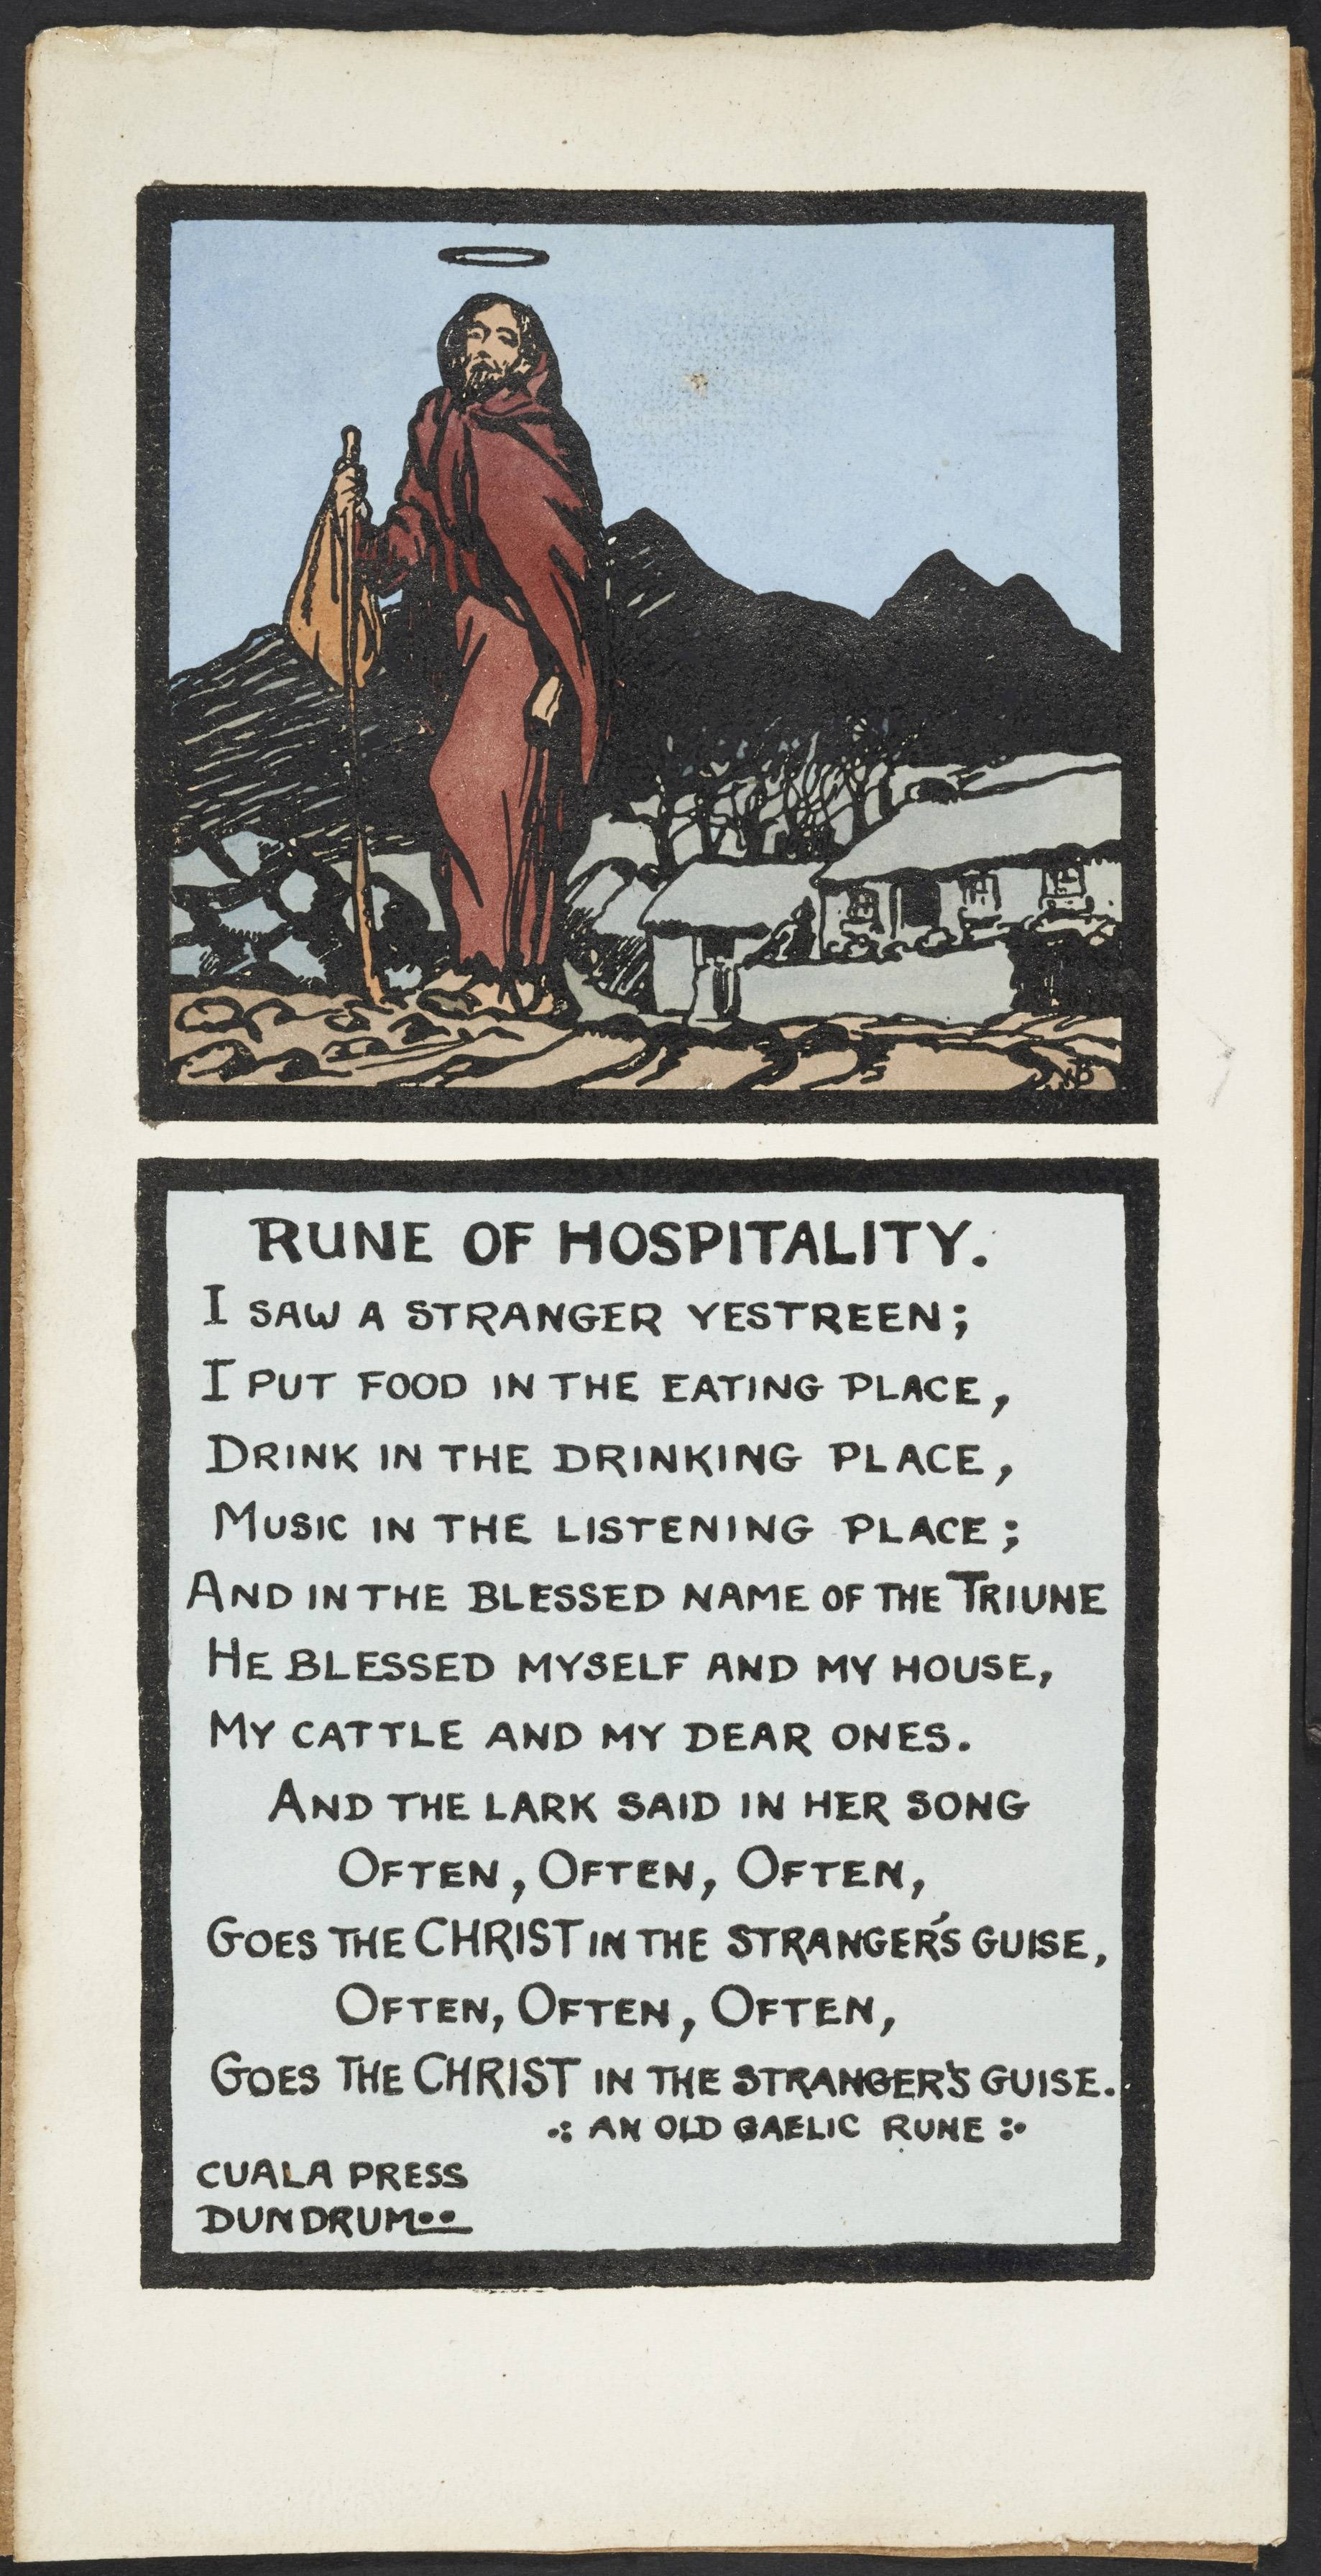 Rune of Hospitality, c. 1925 - 1940. Cuala Press.